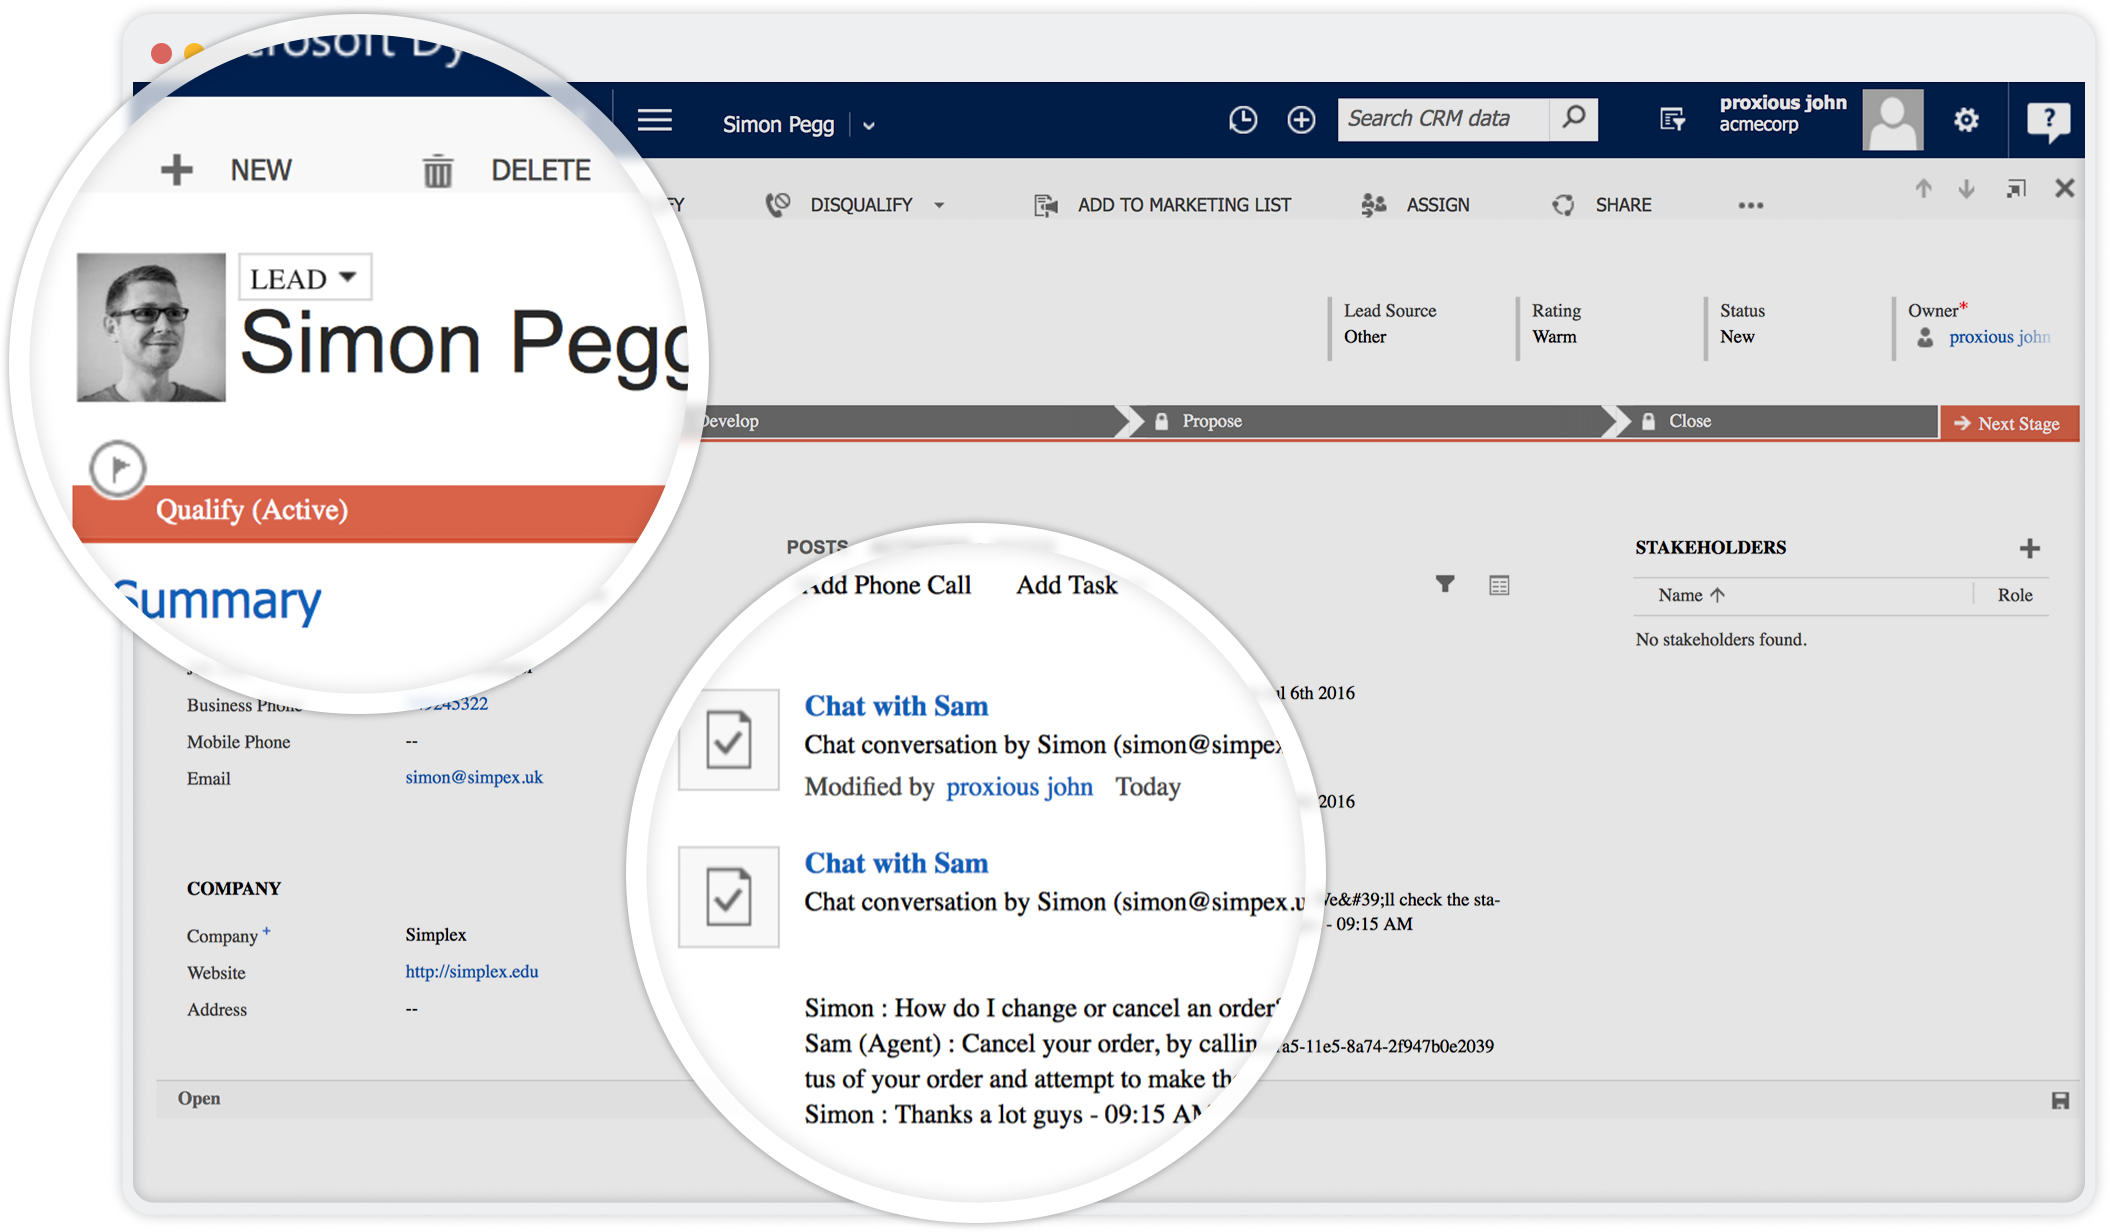 Automatically add contacts or leads in MS dynamics CRM